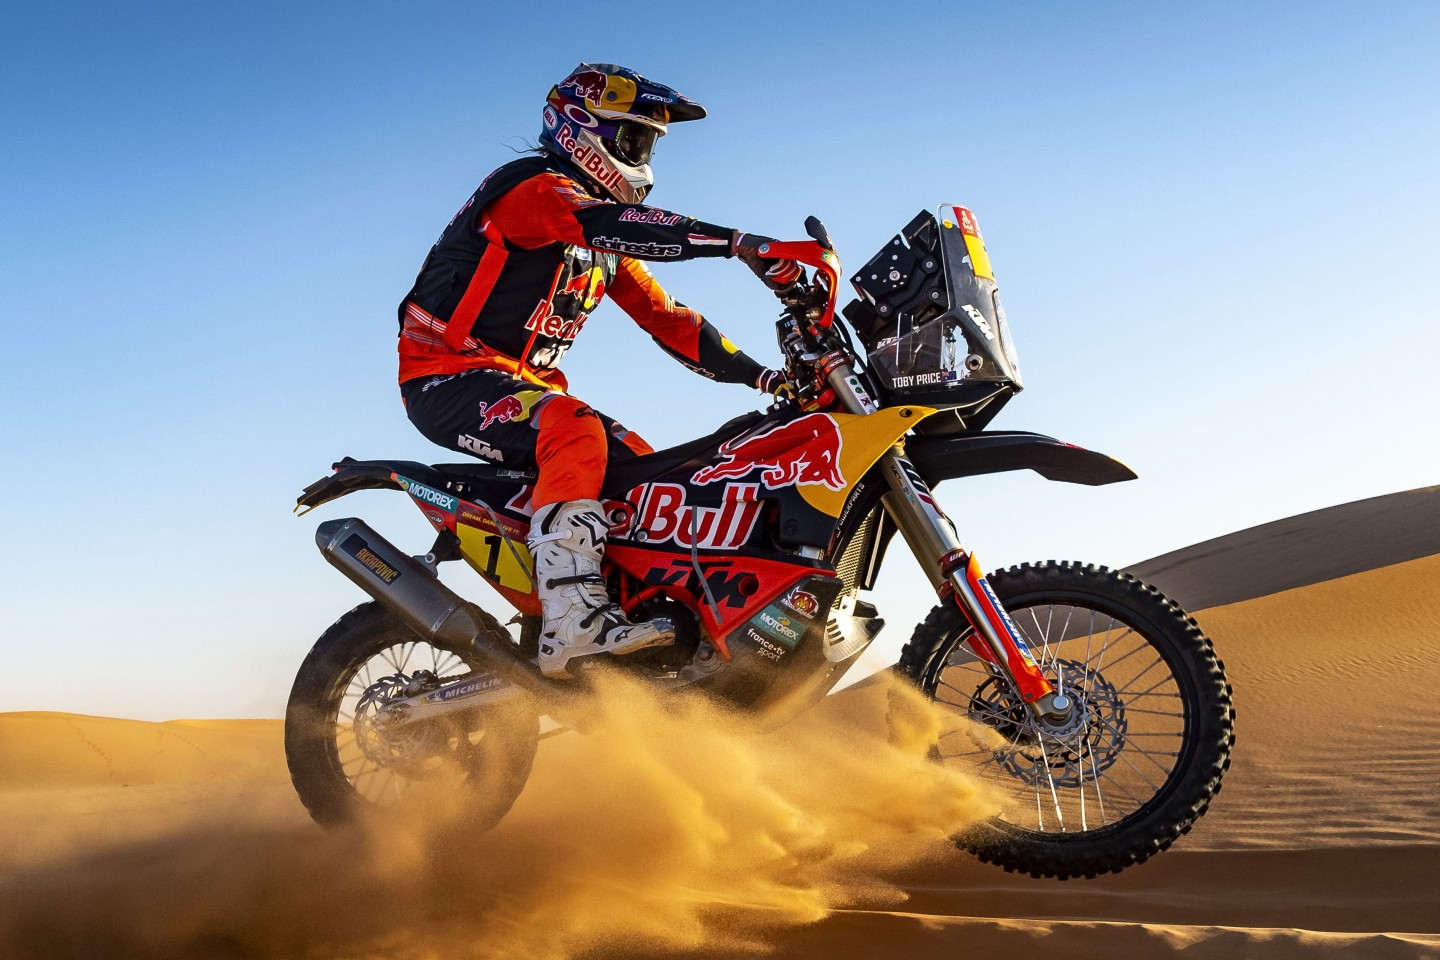 KTM dominates the world's toughest race, Dakar Rally. The race covers 8,000km over 13 days and KTM hasn't been beaten in the event for two decades. That's factory rider Toby Price on the factory KTM.